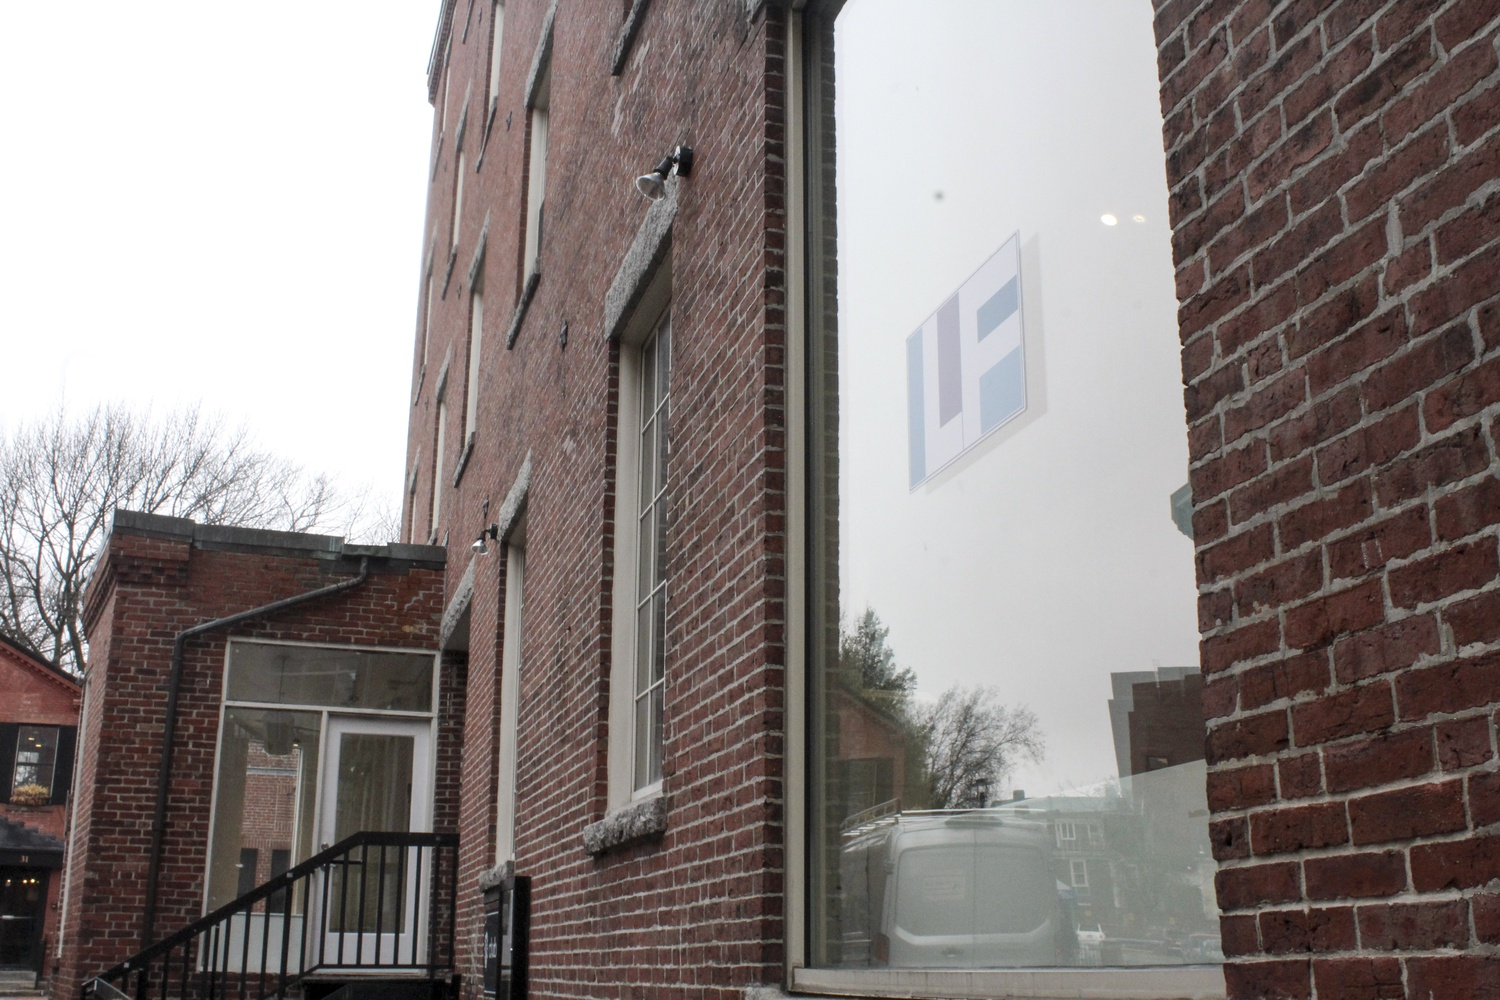 Harvard Square's LF store, a fashion retail chain, closed its doors on March 30th.